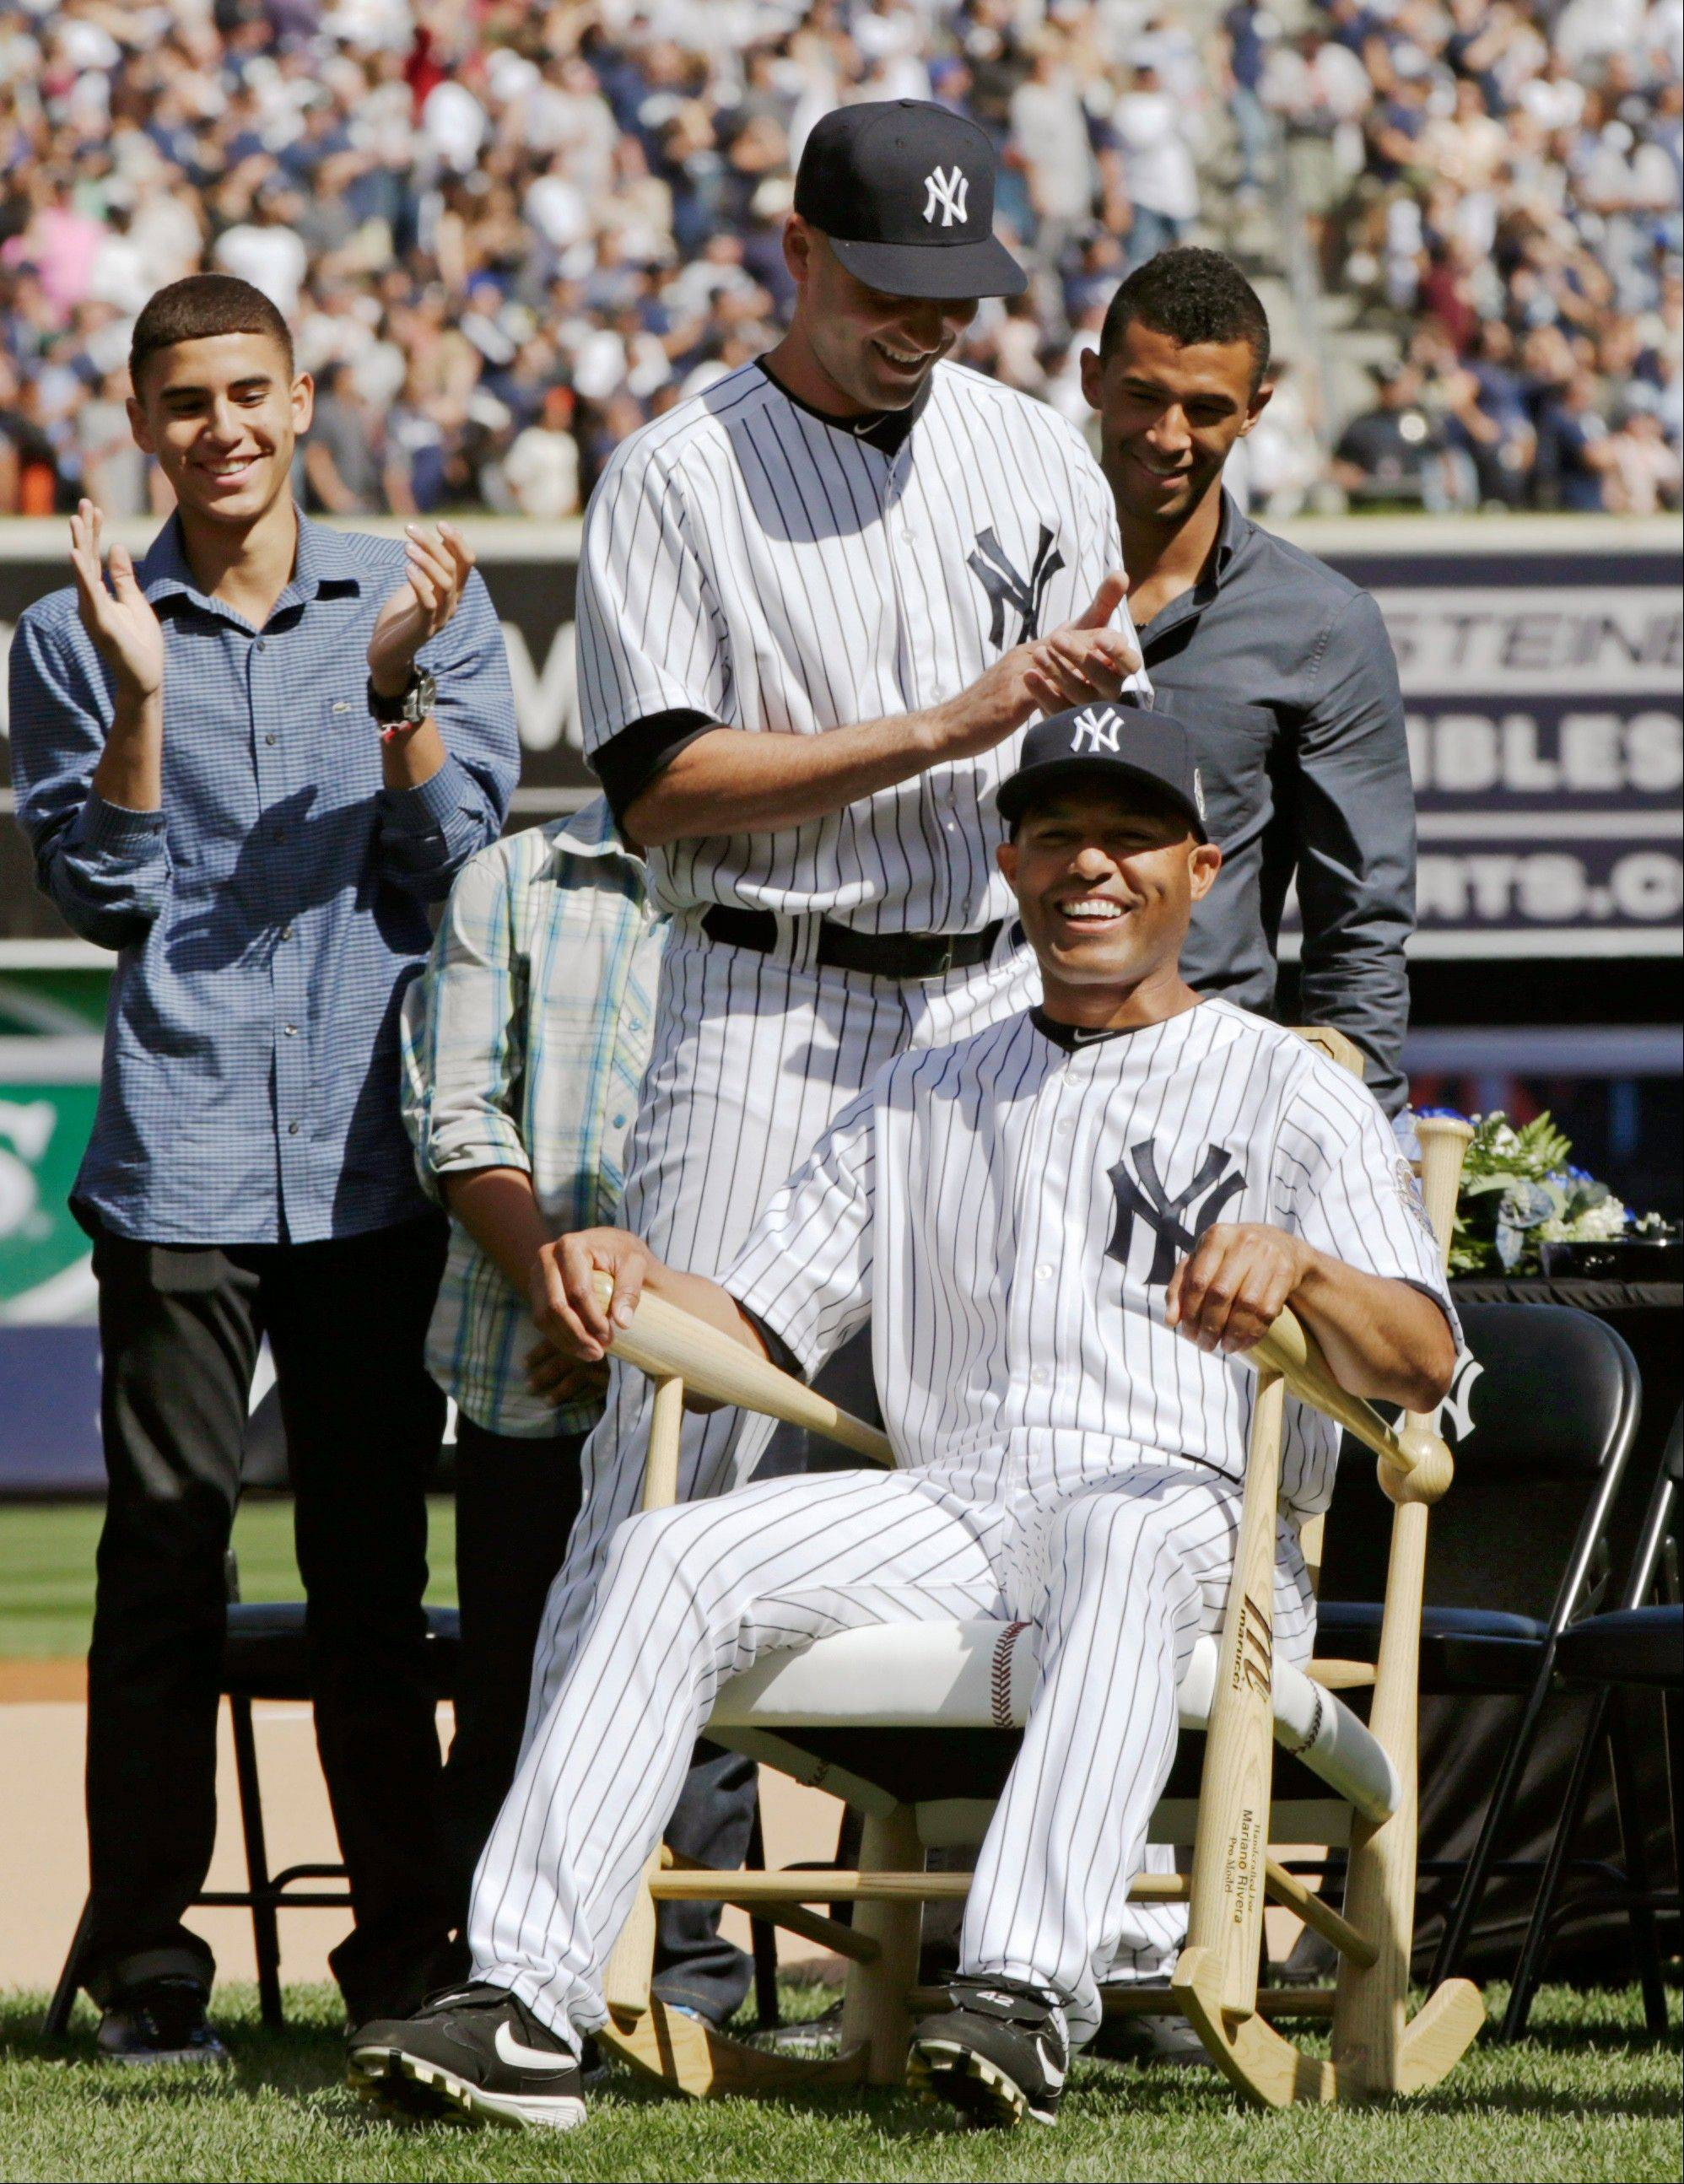 New York Yankees Derek Jeter, standing center, applauds as Yankees relief pitcher Mariano Rivera (42) tries out a rocking chair, one of many gifts Rivera received during a pregame retirement ceremony at Yankee Stadium before the Yankees baseball game against the San Francisco Giants, Sunday, Sept. 22, 2013, in New York. Rivera's sons Jafet, left, and Mariano Jr. watch the action. The 13-time All-Star closer is retiring at the end of this season.